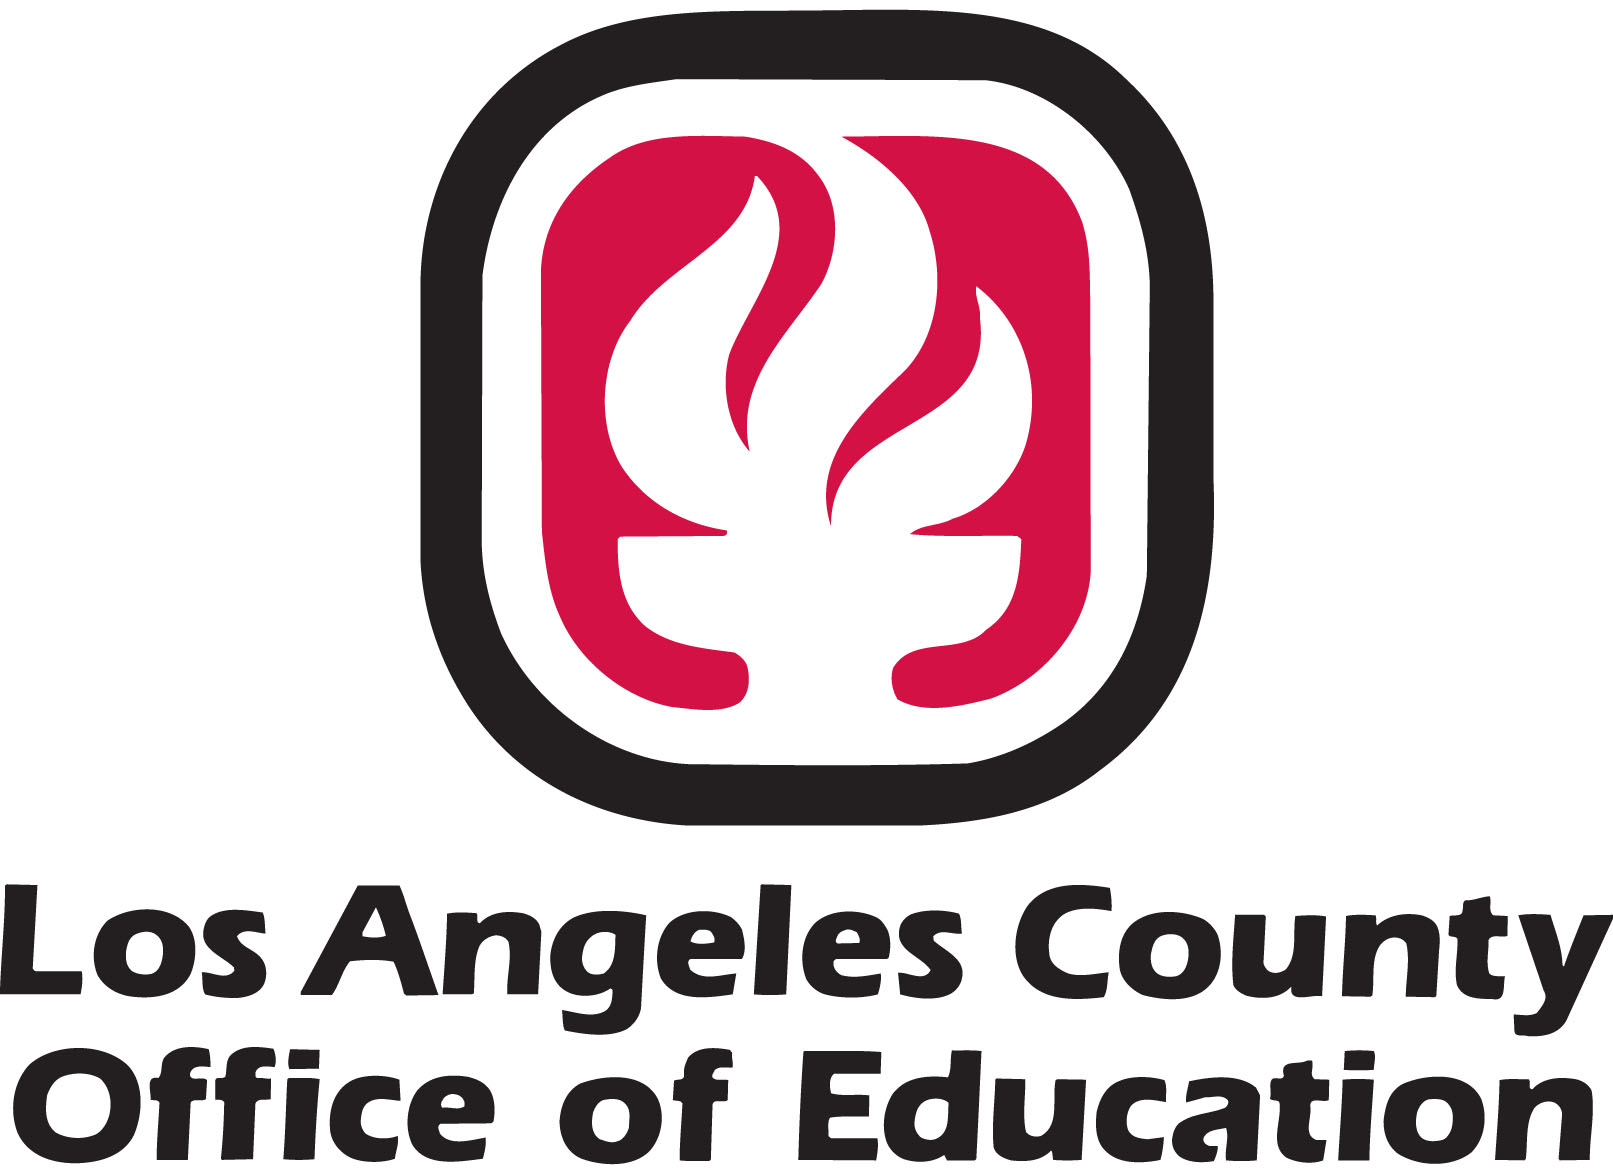 12. LA Co Office of Education